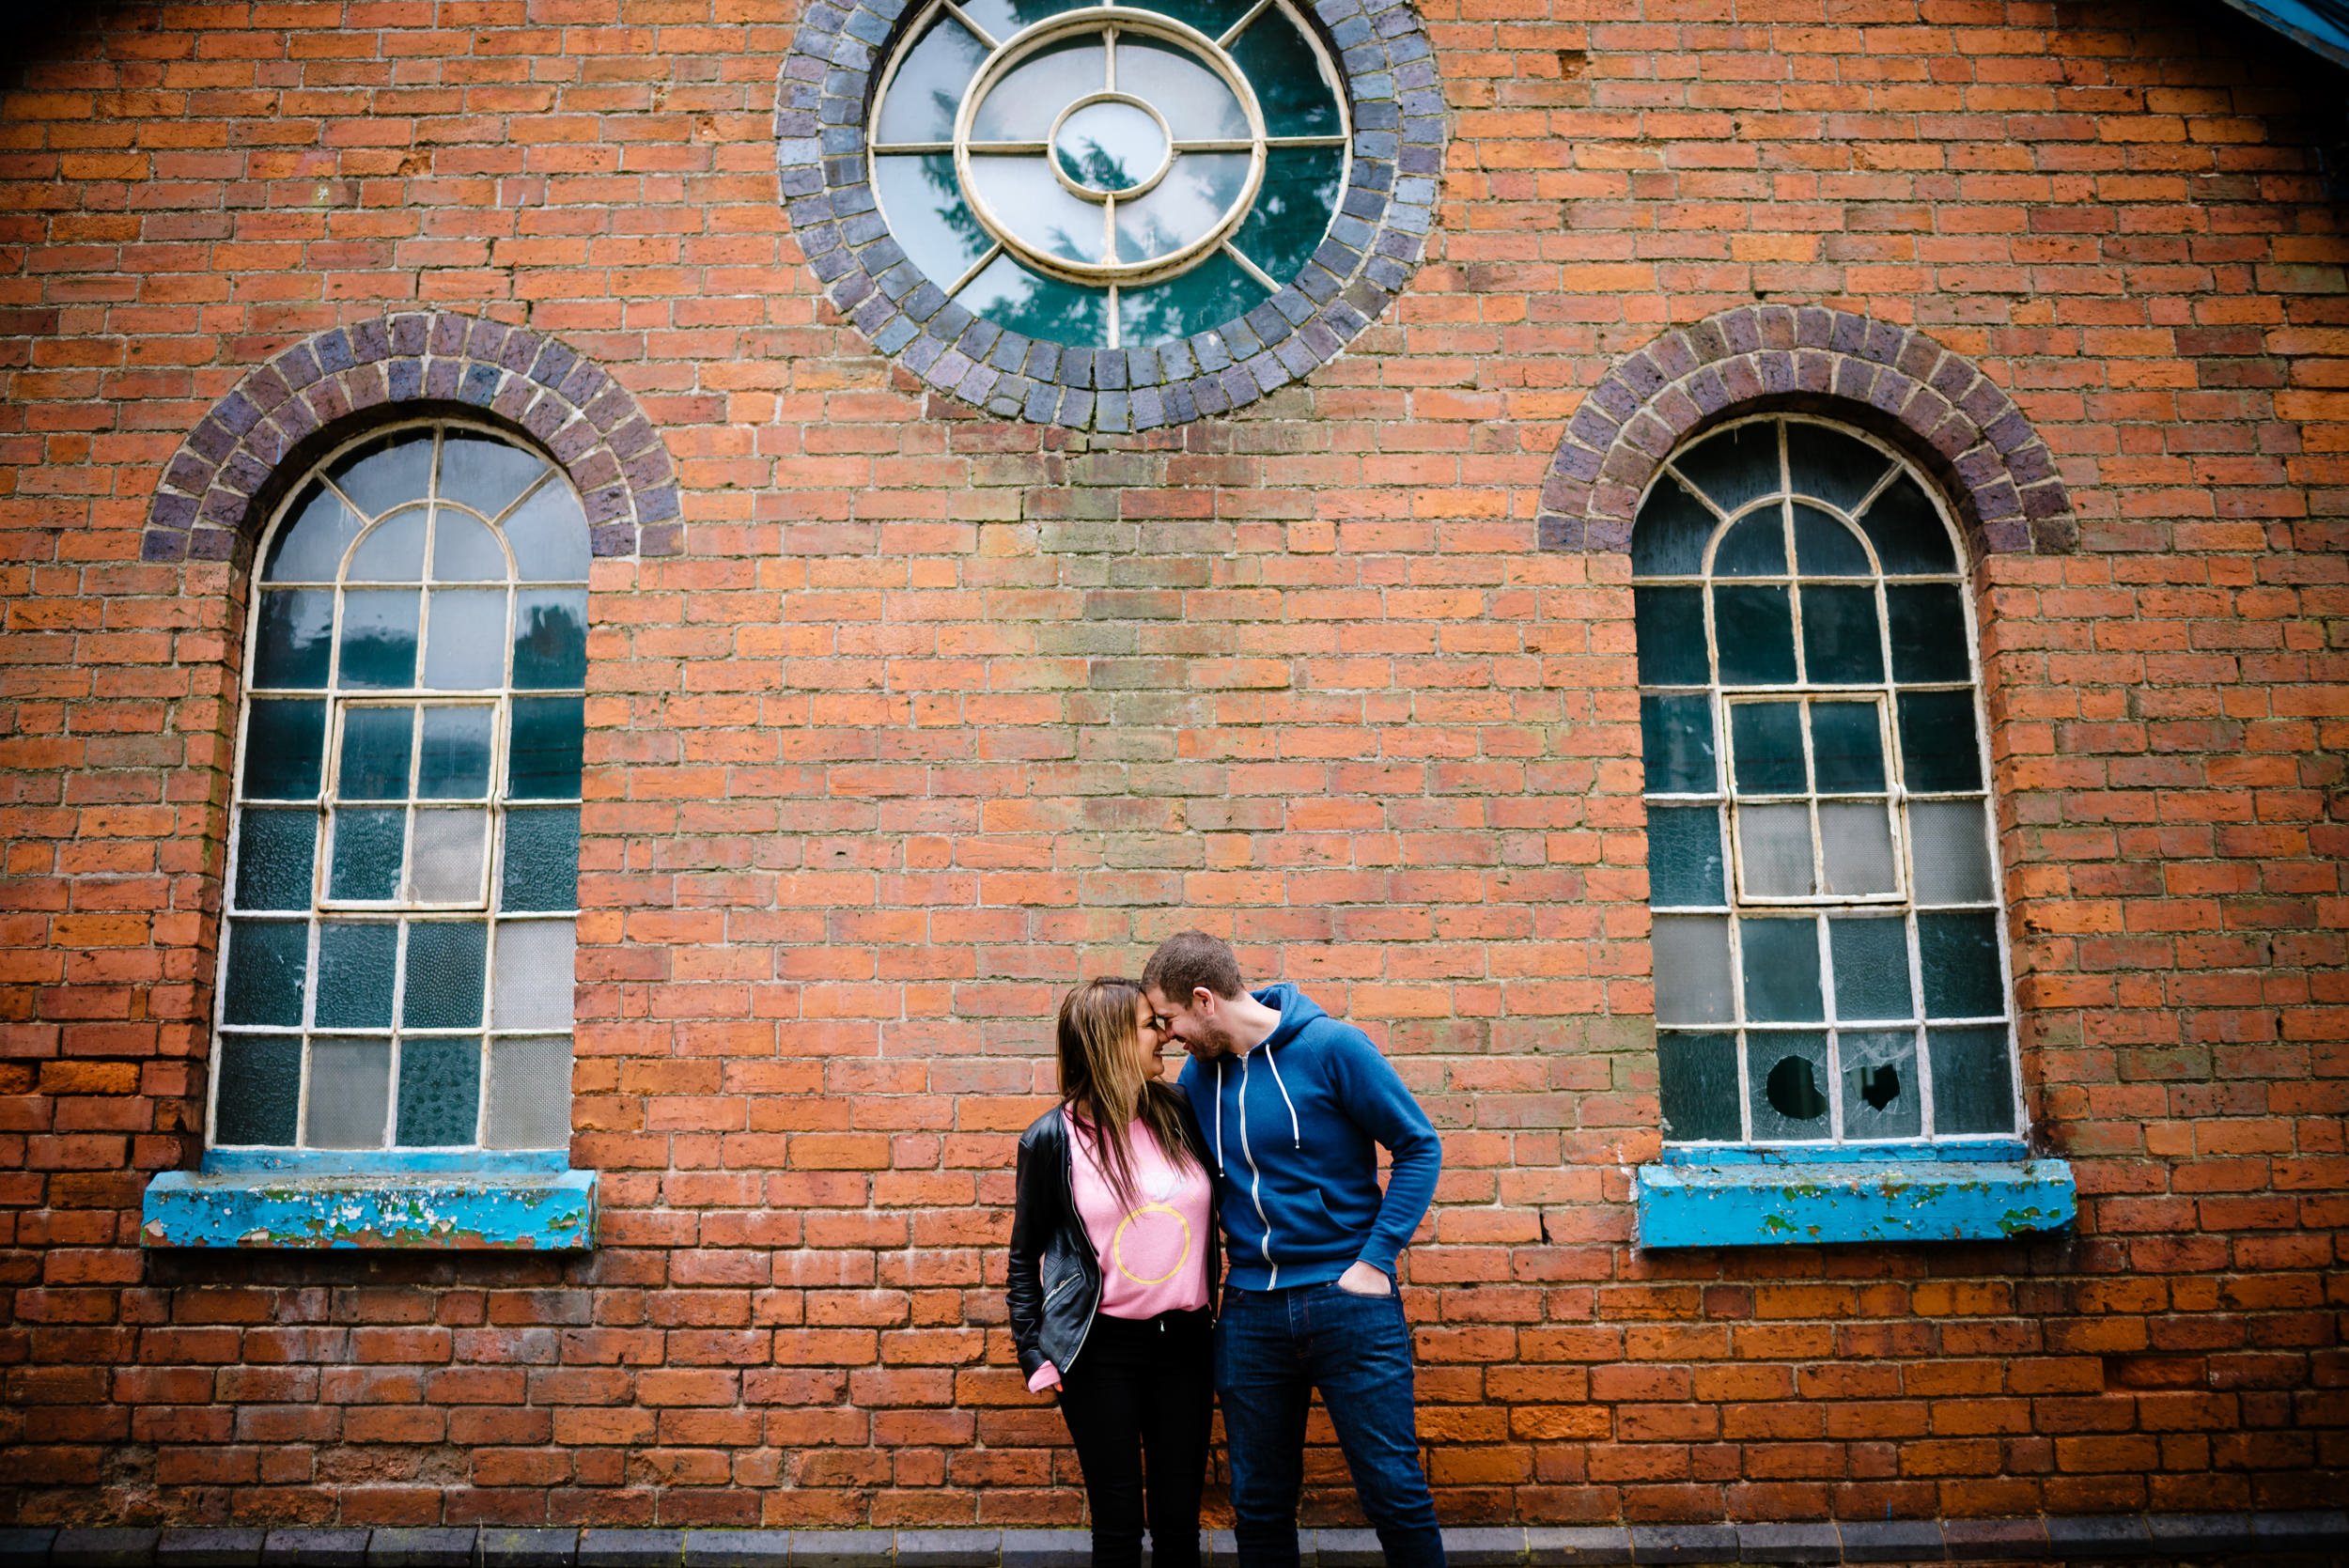 Relaxed couple having fun in front of an old building